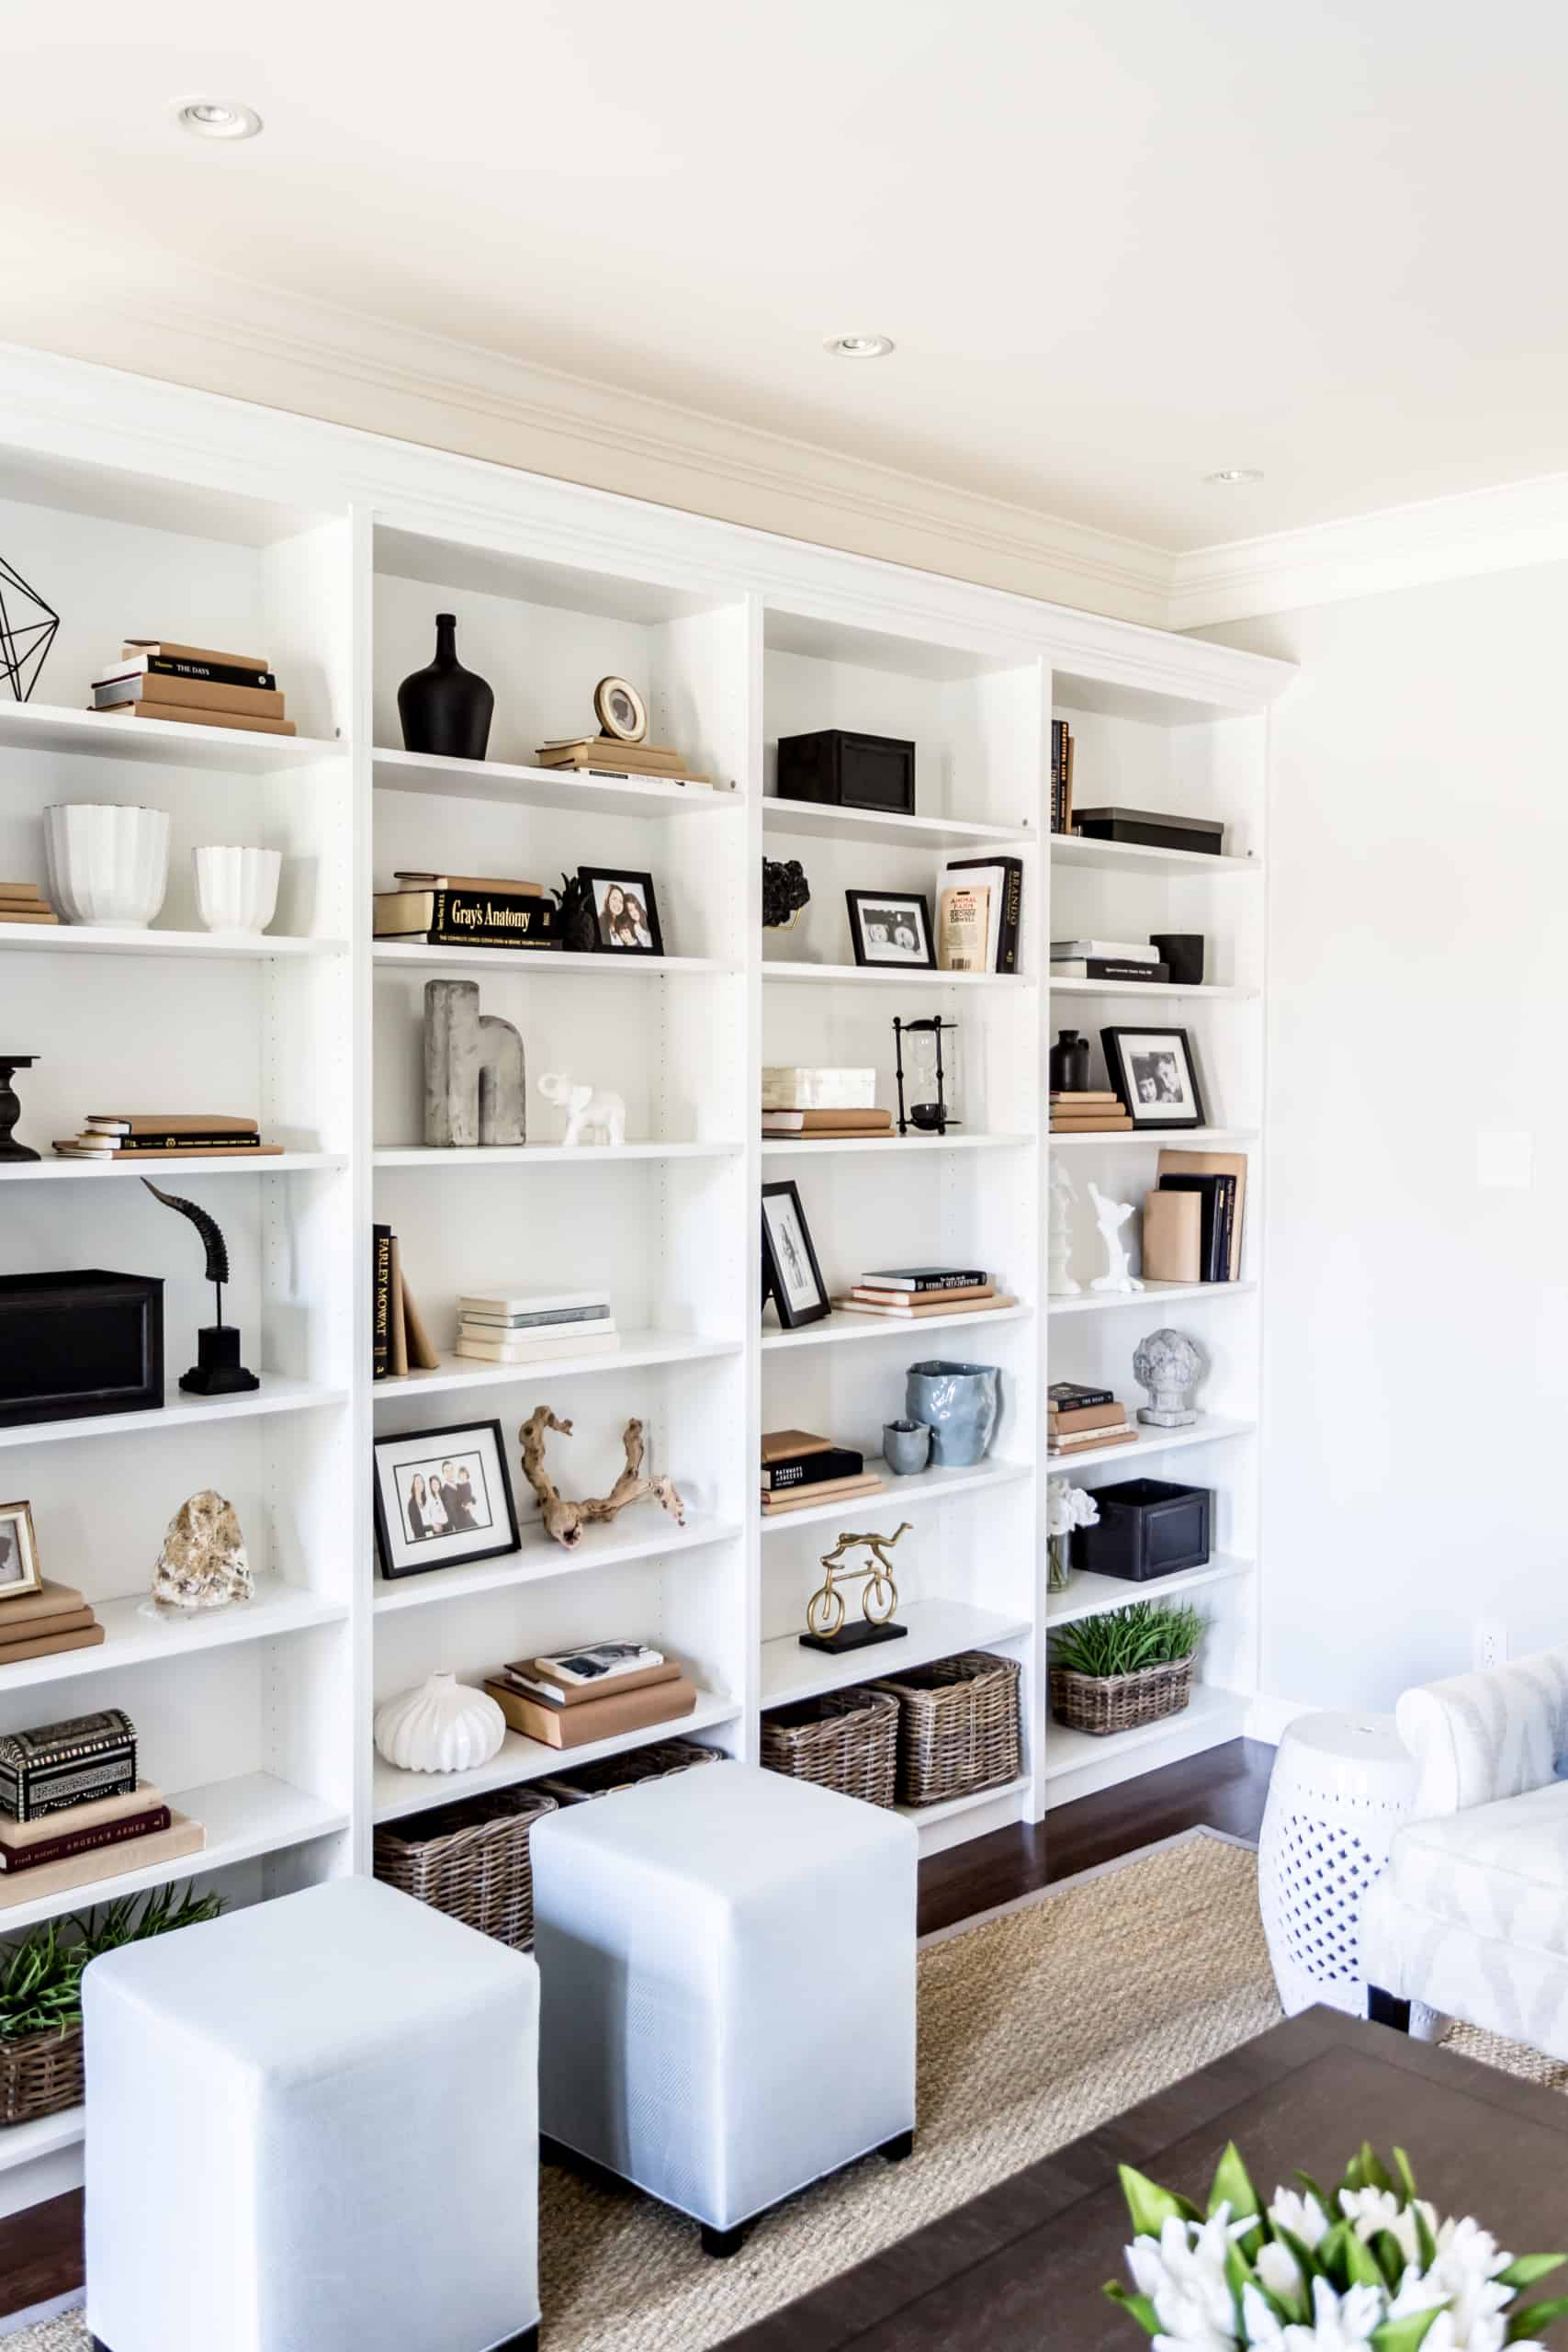 Massive bookcase covering large wall with an assortment of decorations on it